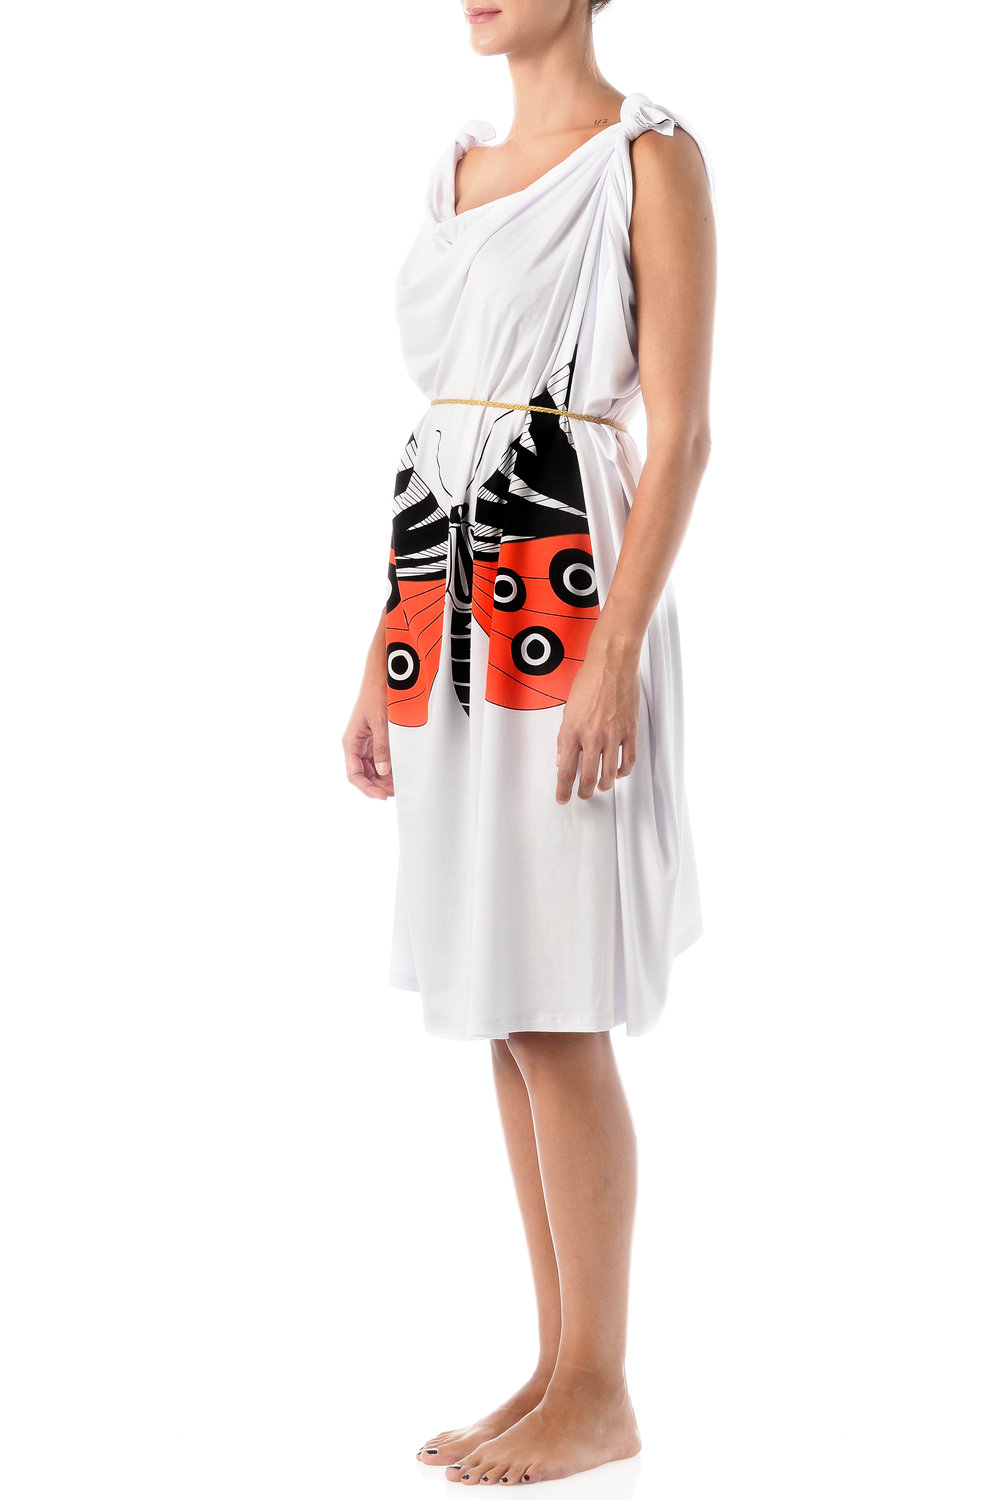 butterfly-orange-on-white-viscose-wrap-dress-side.jpg